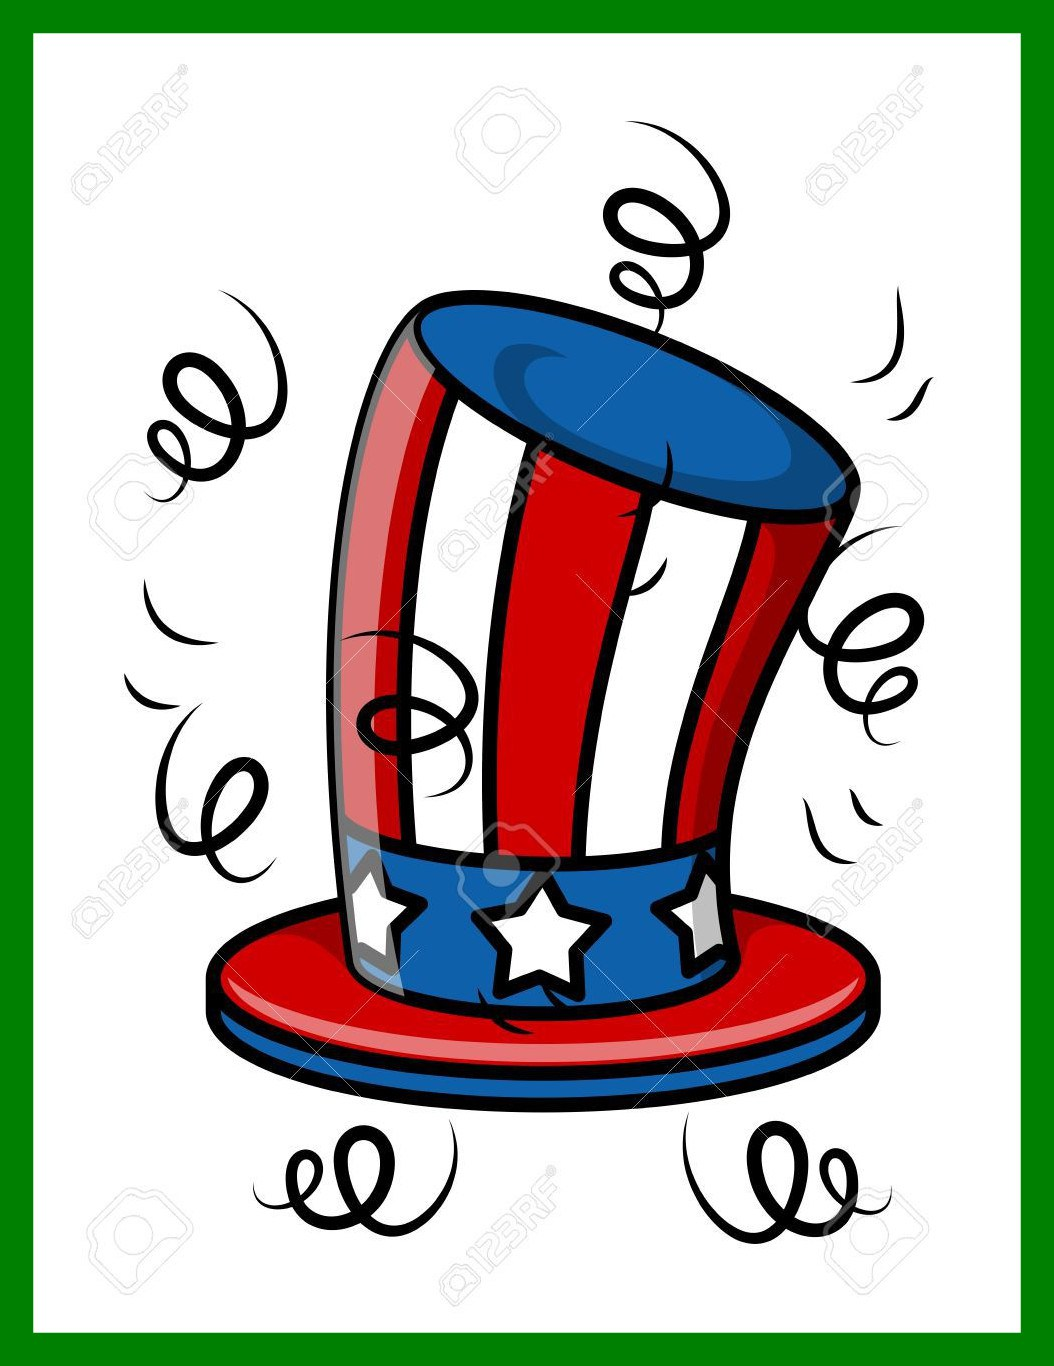 1054x1366 Fascinating Uncle Sam Clipart Th Pencil And In Color Image For Hat